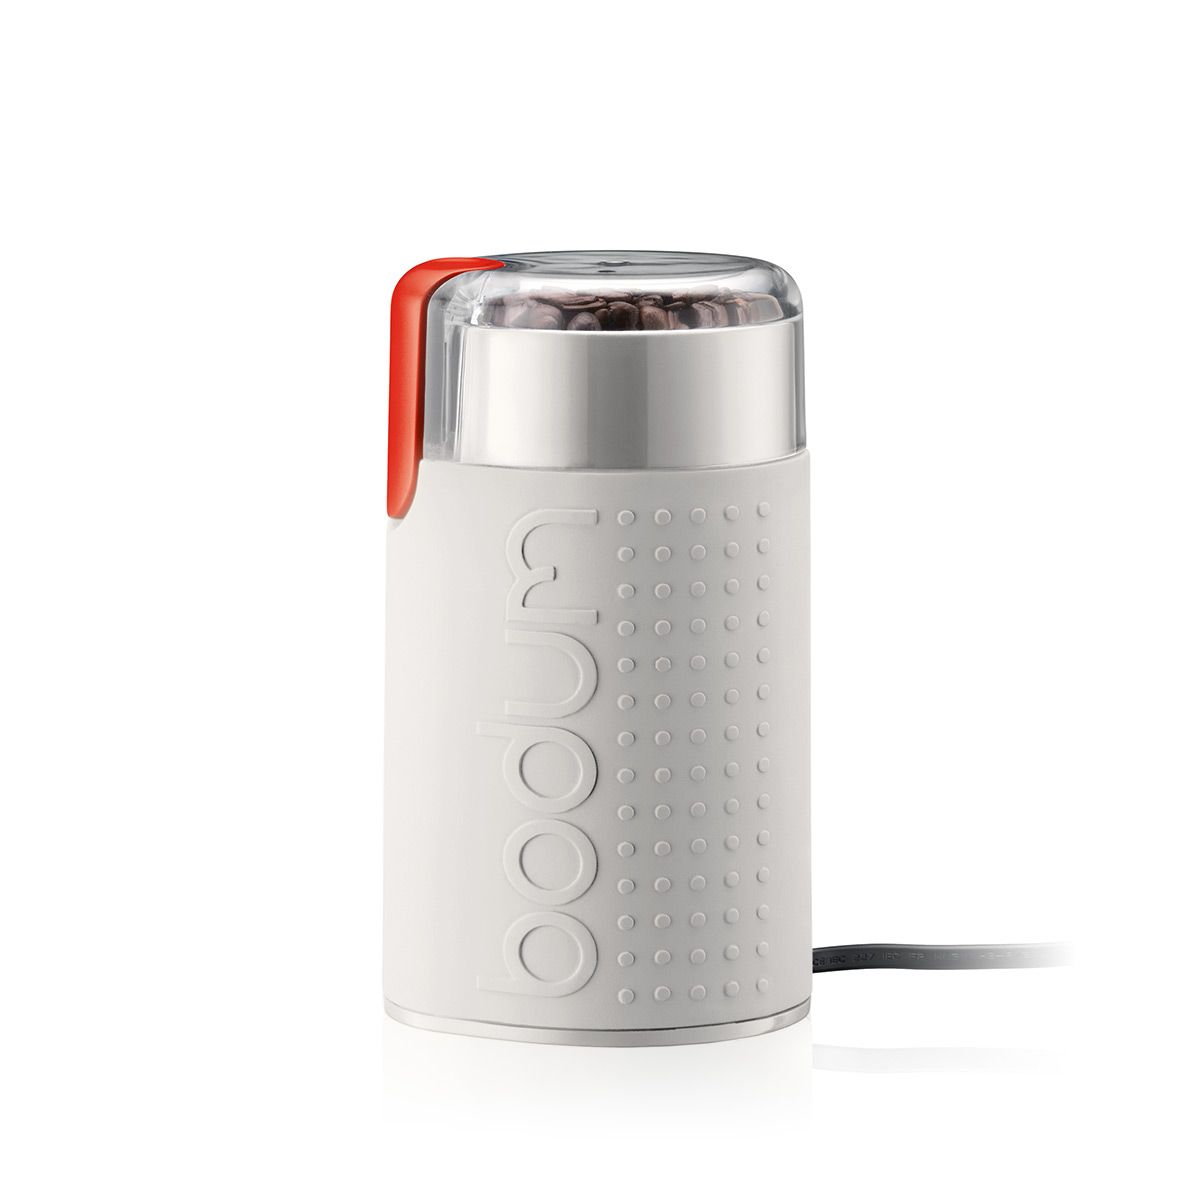 Electric Coffee Grinder BISTRO - White | BODUM